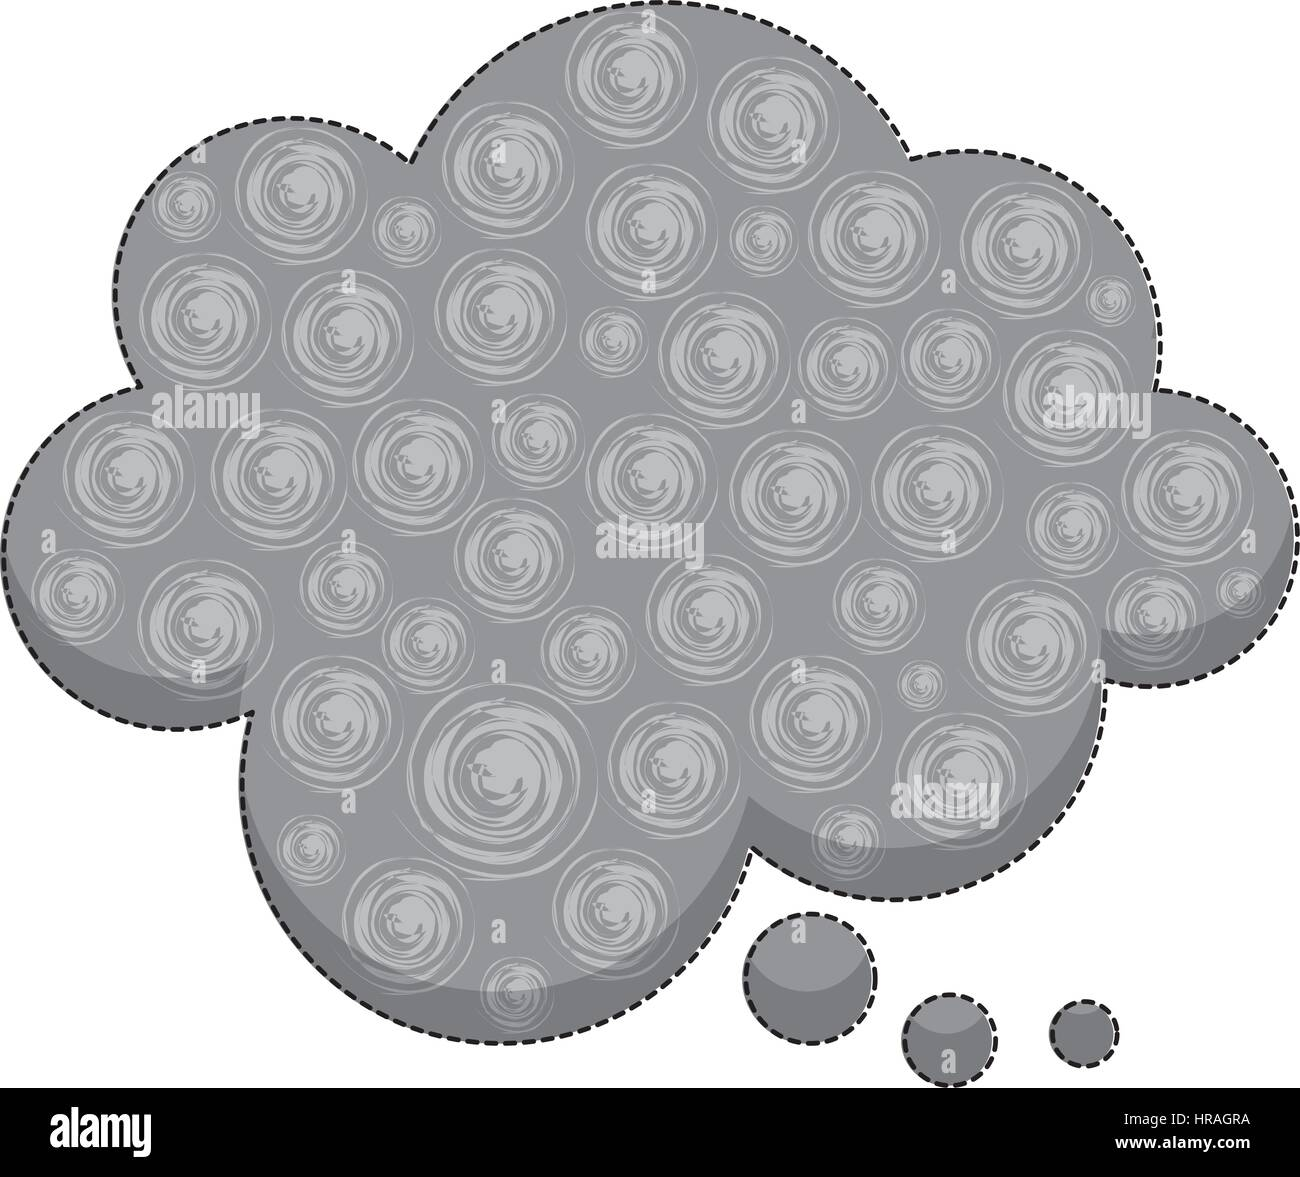 sticker callout for dialogue shape of cloud with background swirls - Stock Image